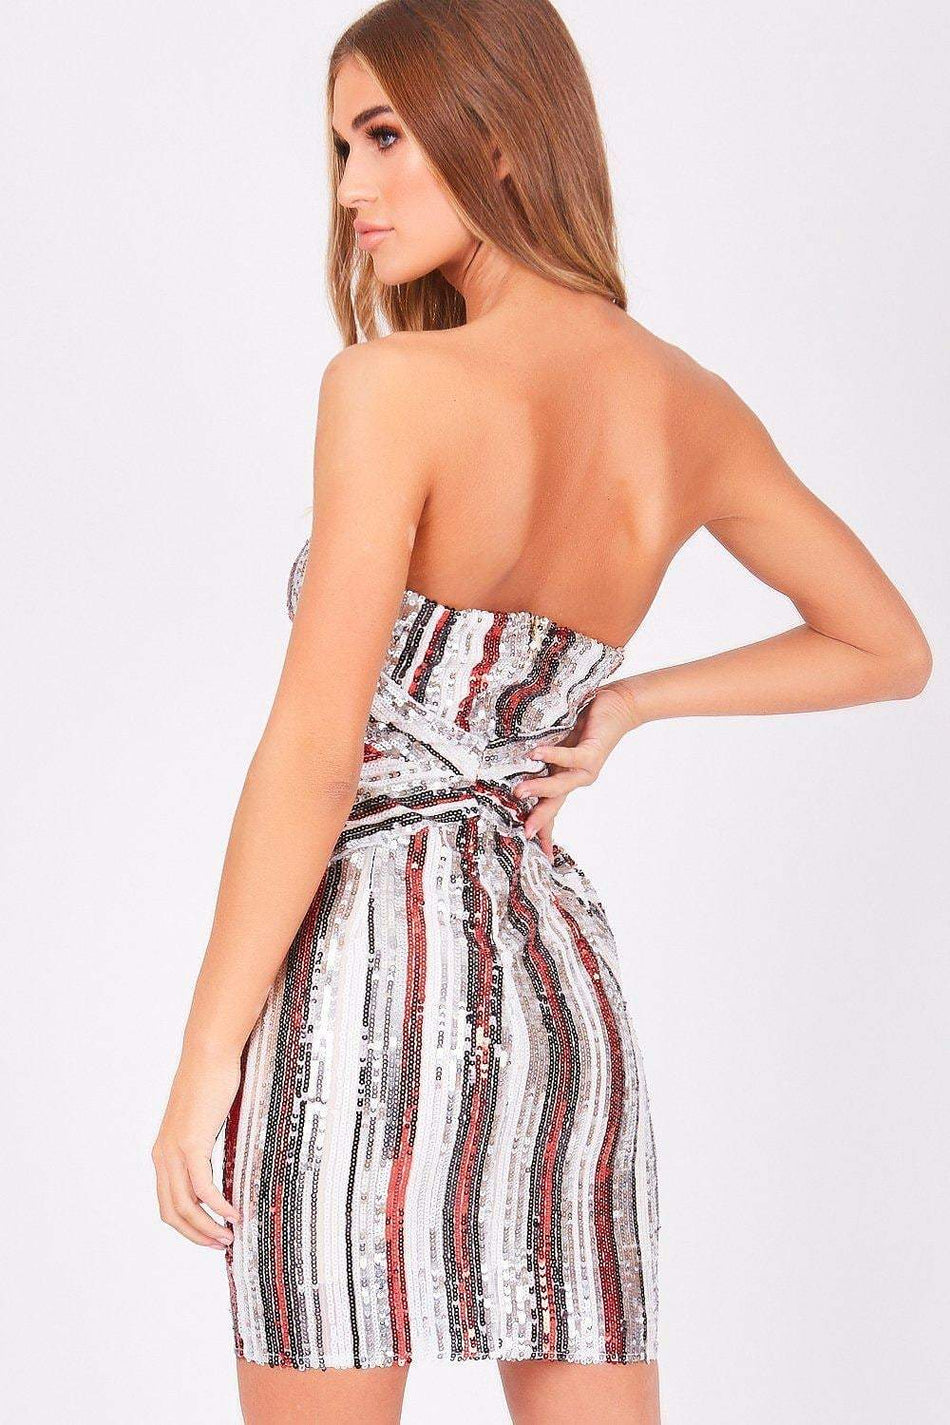 Red Stripe Sequin Mini Dress - KATCH ME